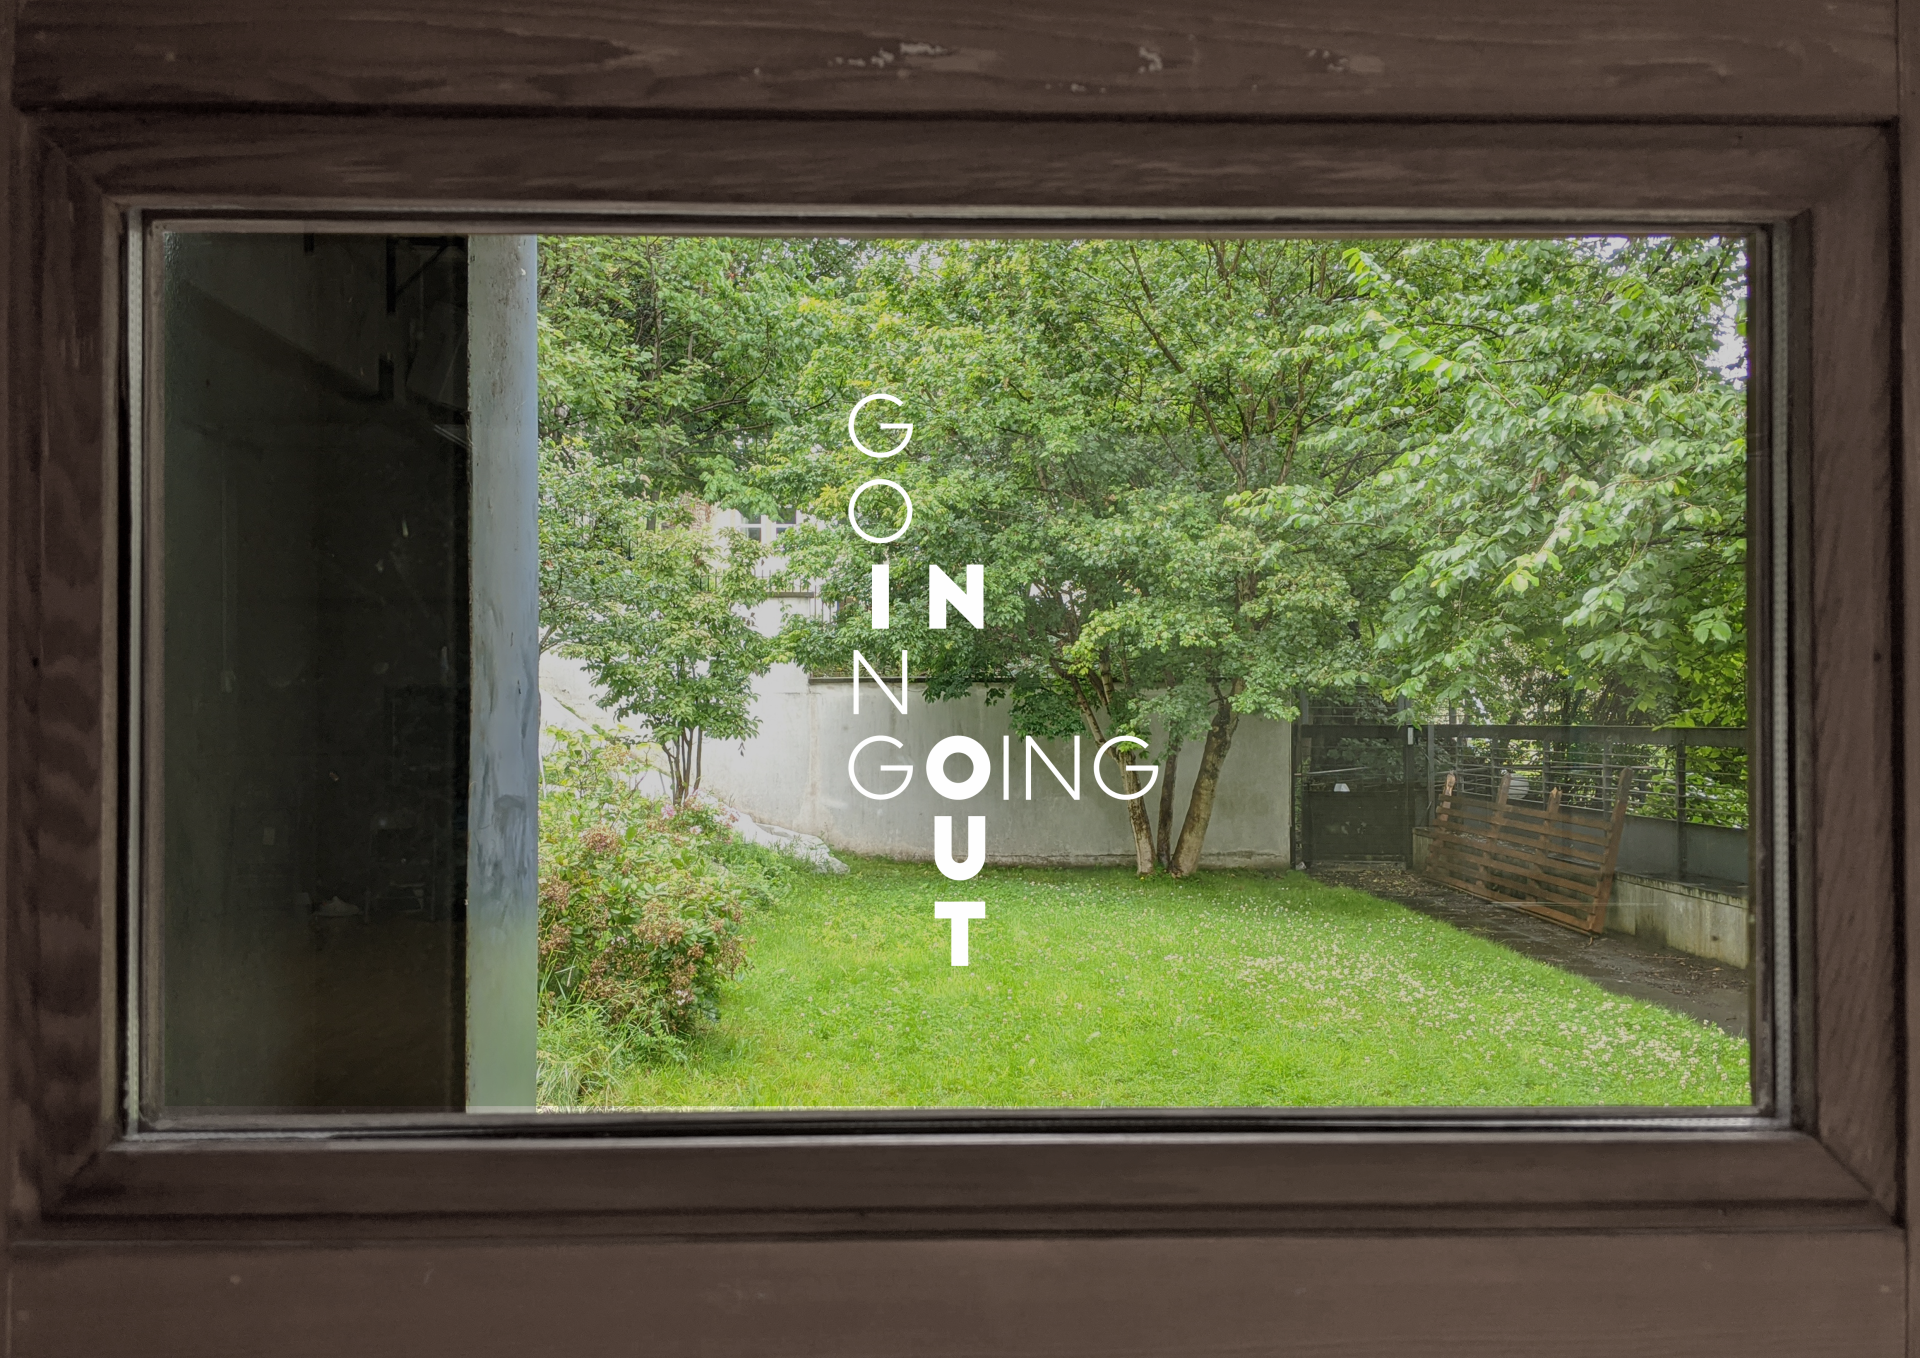 The viewer is indoors, looking out through a window, towards a lush, green garden. The words GOING IN GOING OUT are layered over the image in white, and intersect like answers in a crossword.